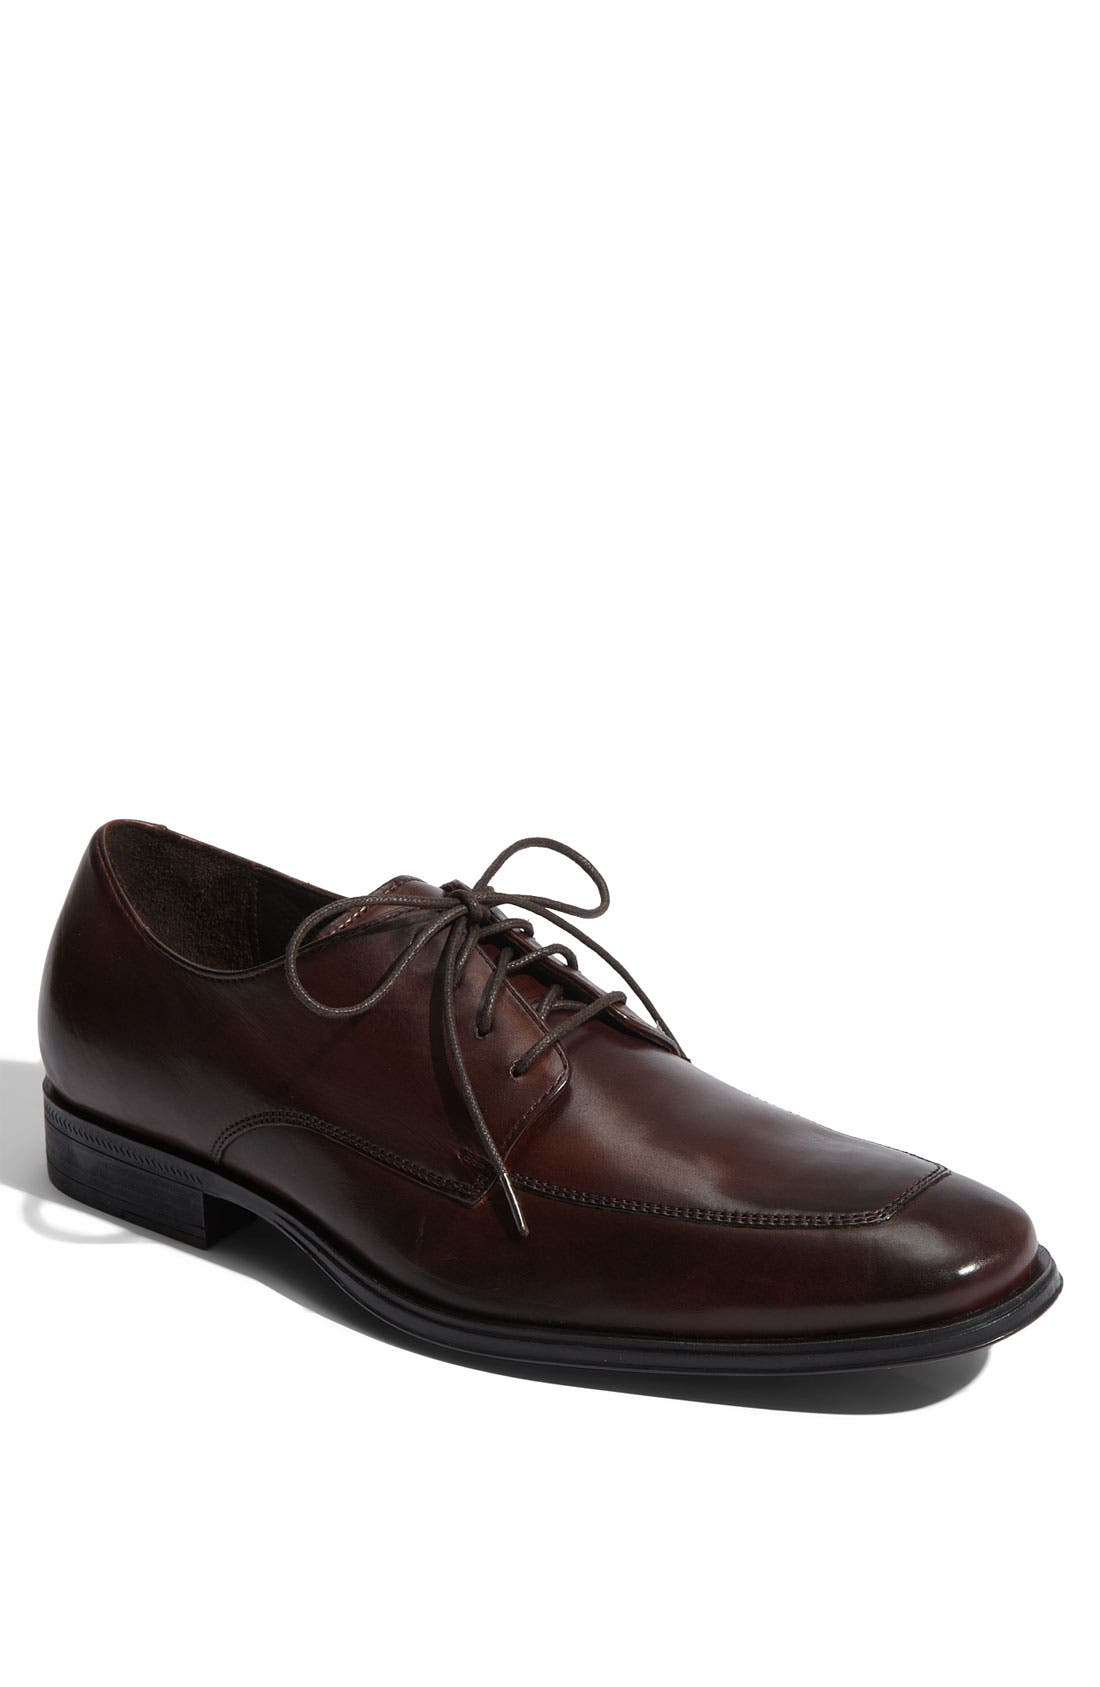 Main Image - Cole Haan 'Air Adams' Oxford (Men)